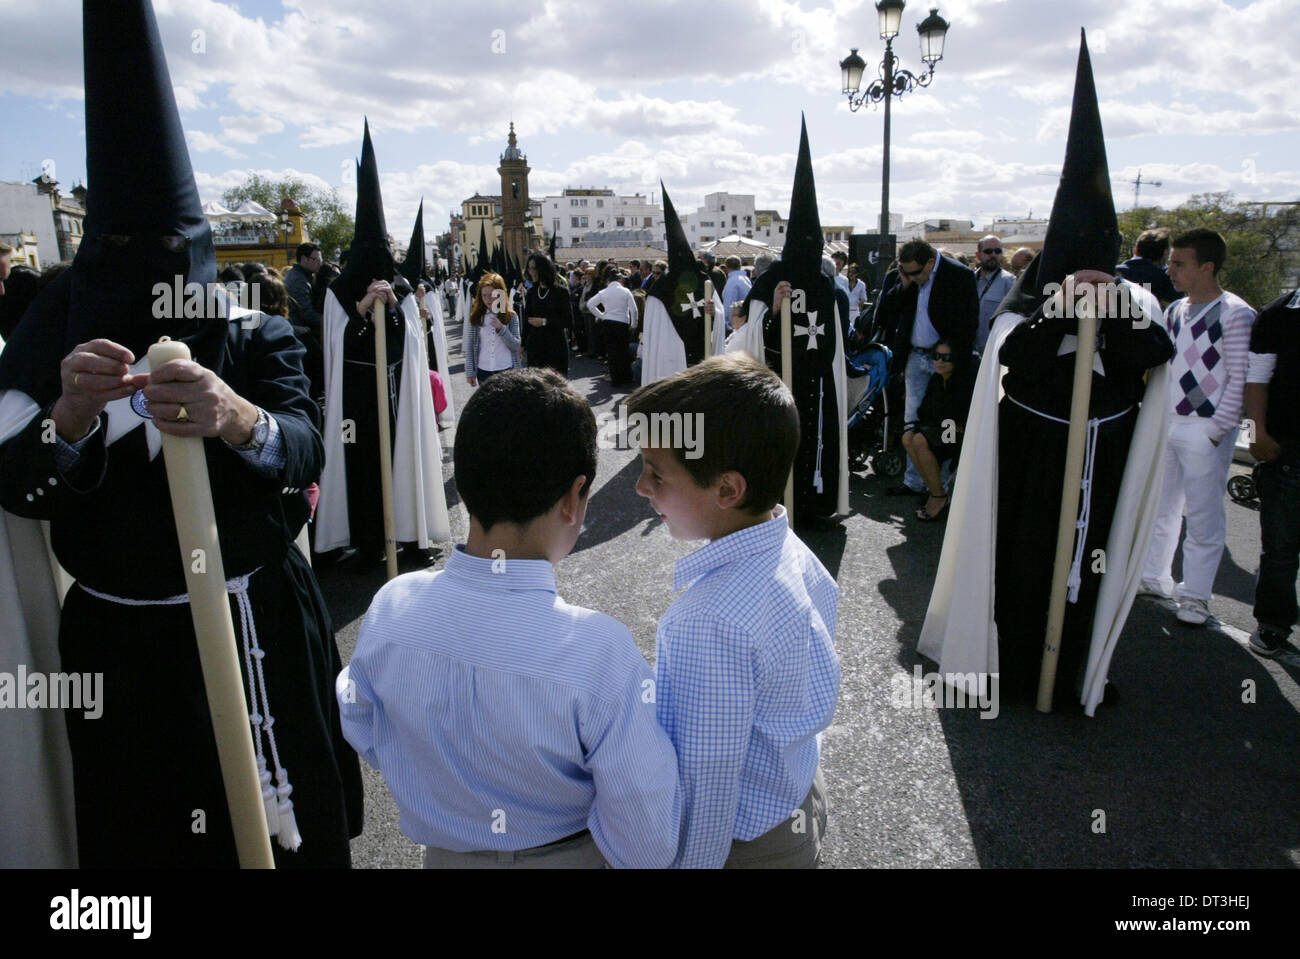 Penitents take part in the El Cachorro brotherhood procession during the Holy Week in Sevilla - Stock Image